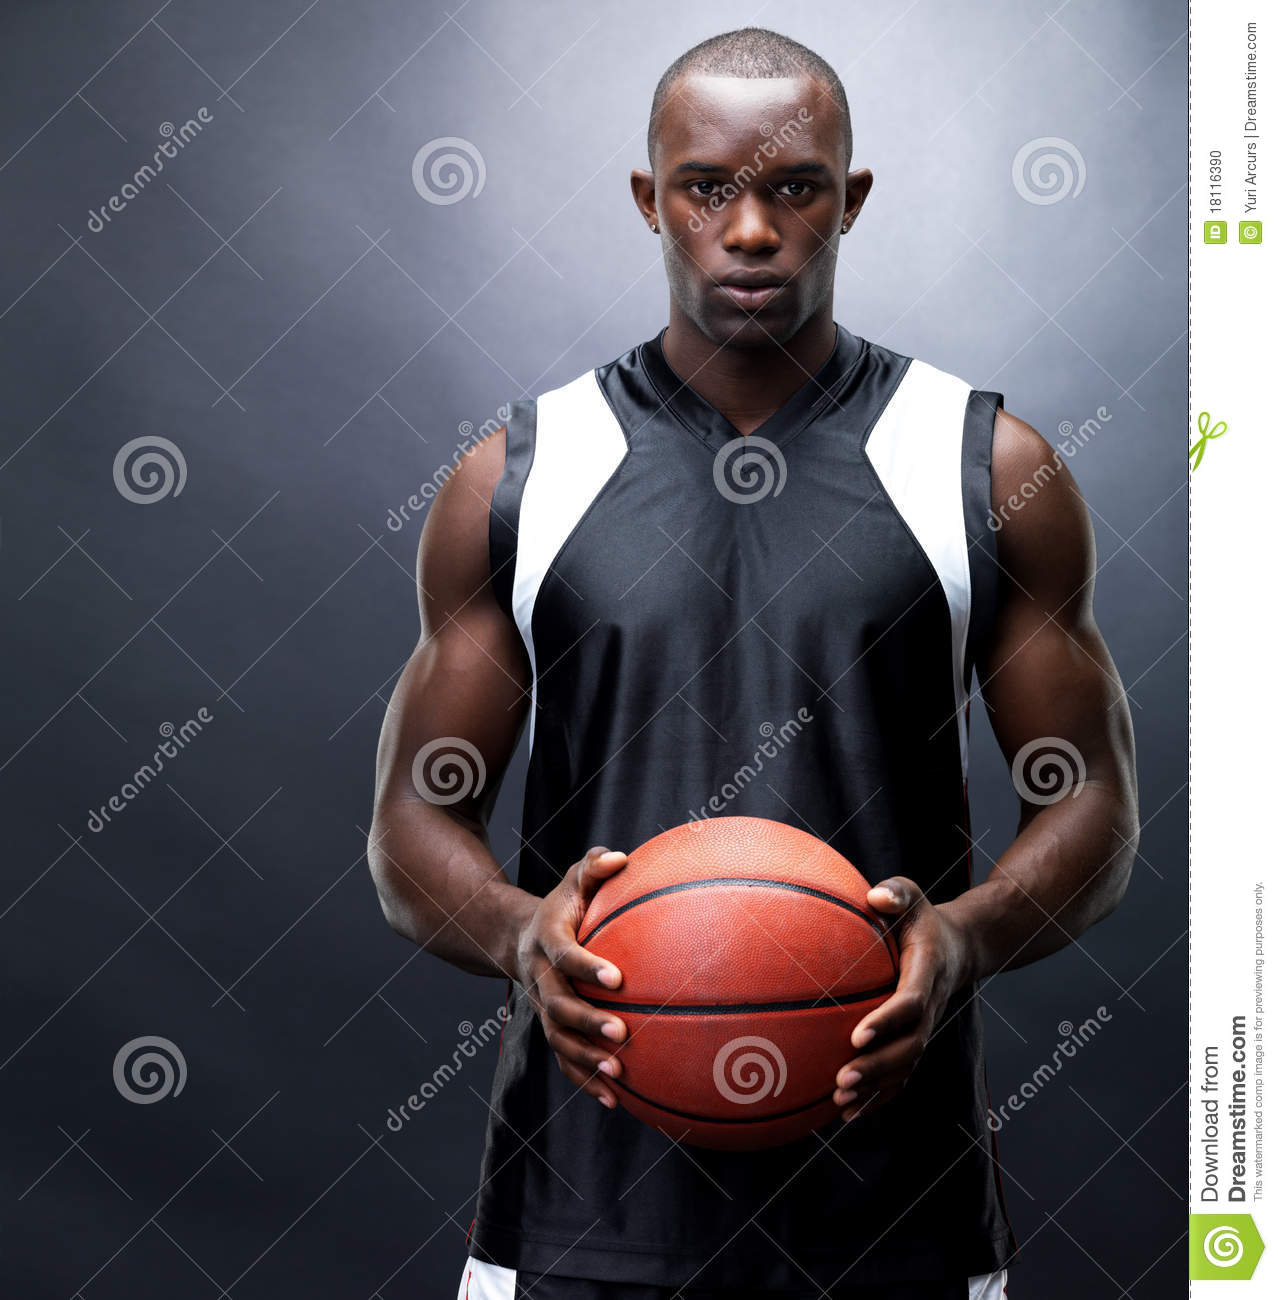 Stock Photo: African american basketball player. Image ...